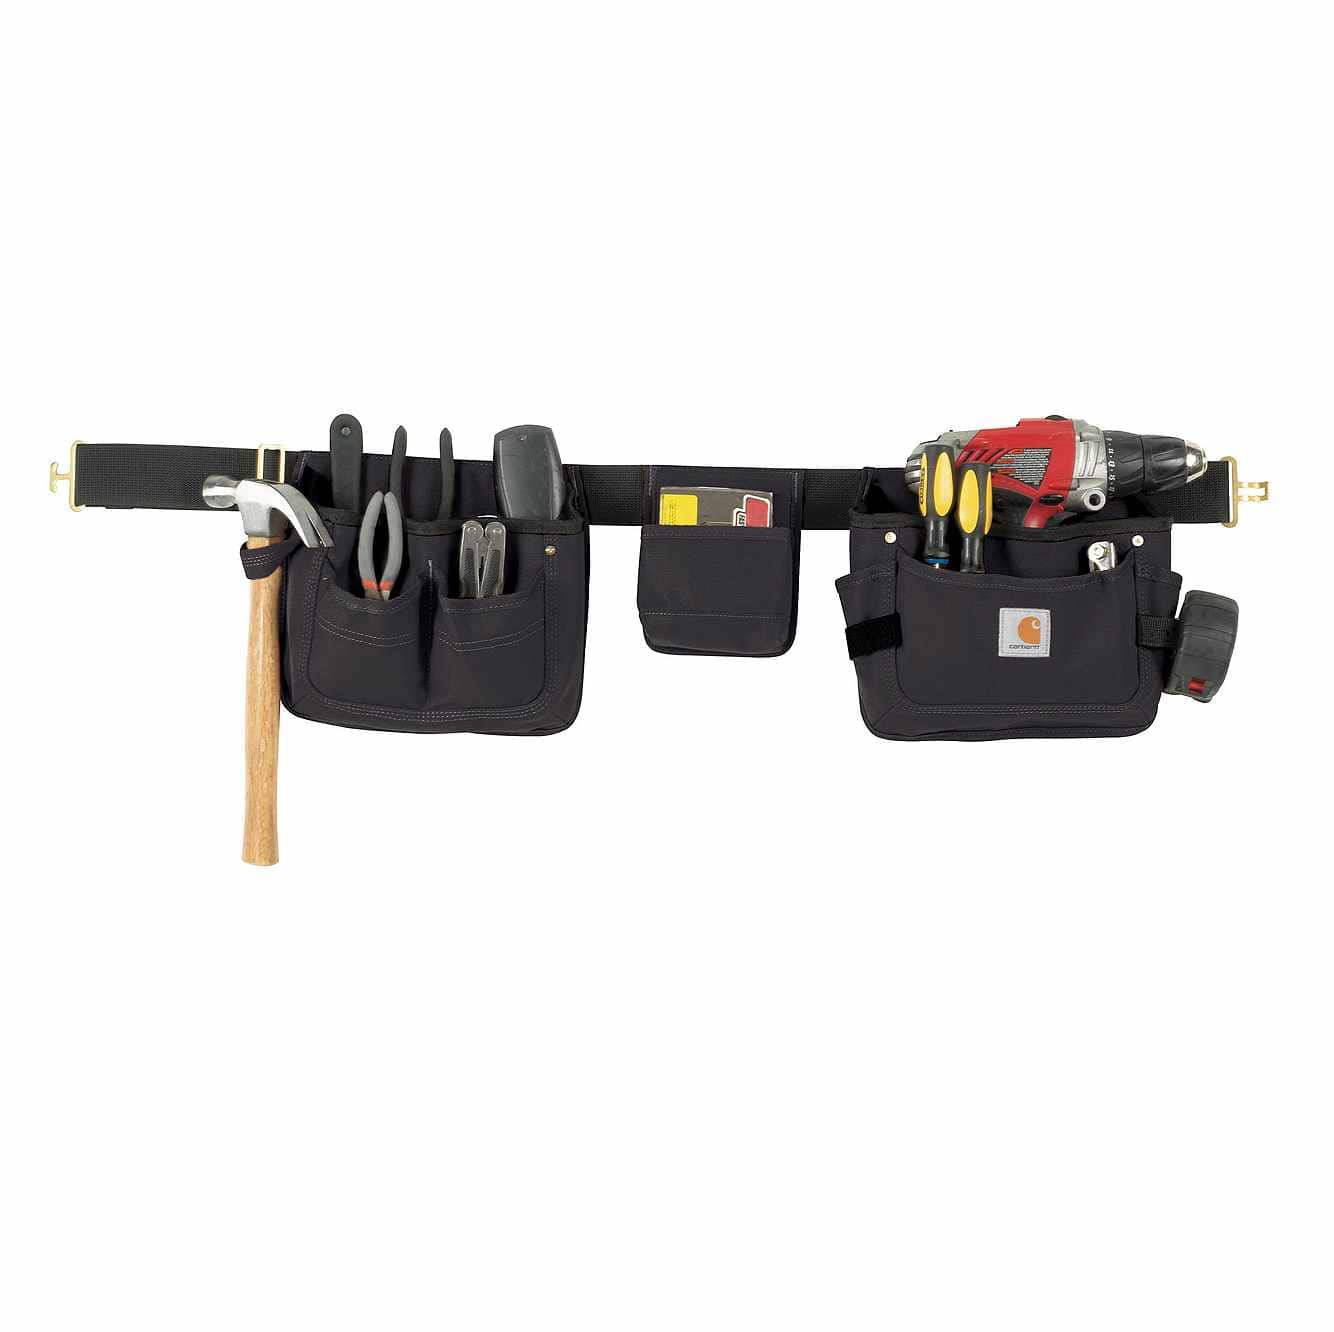 Picture of Legacy Standard Tool Belt in Black